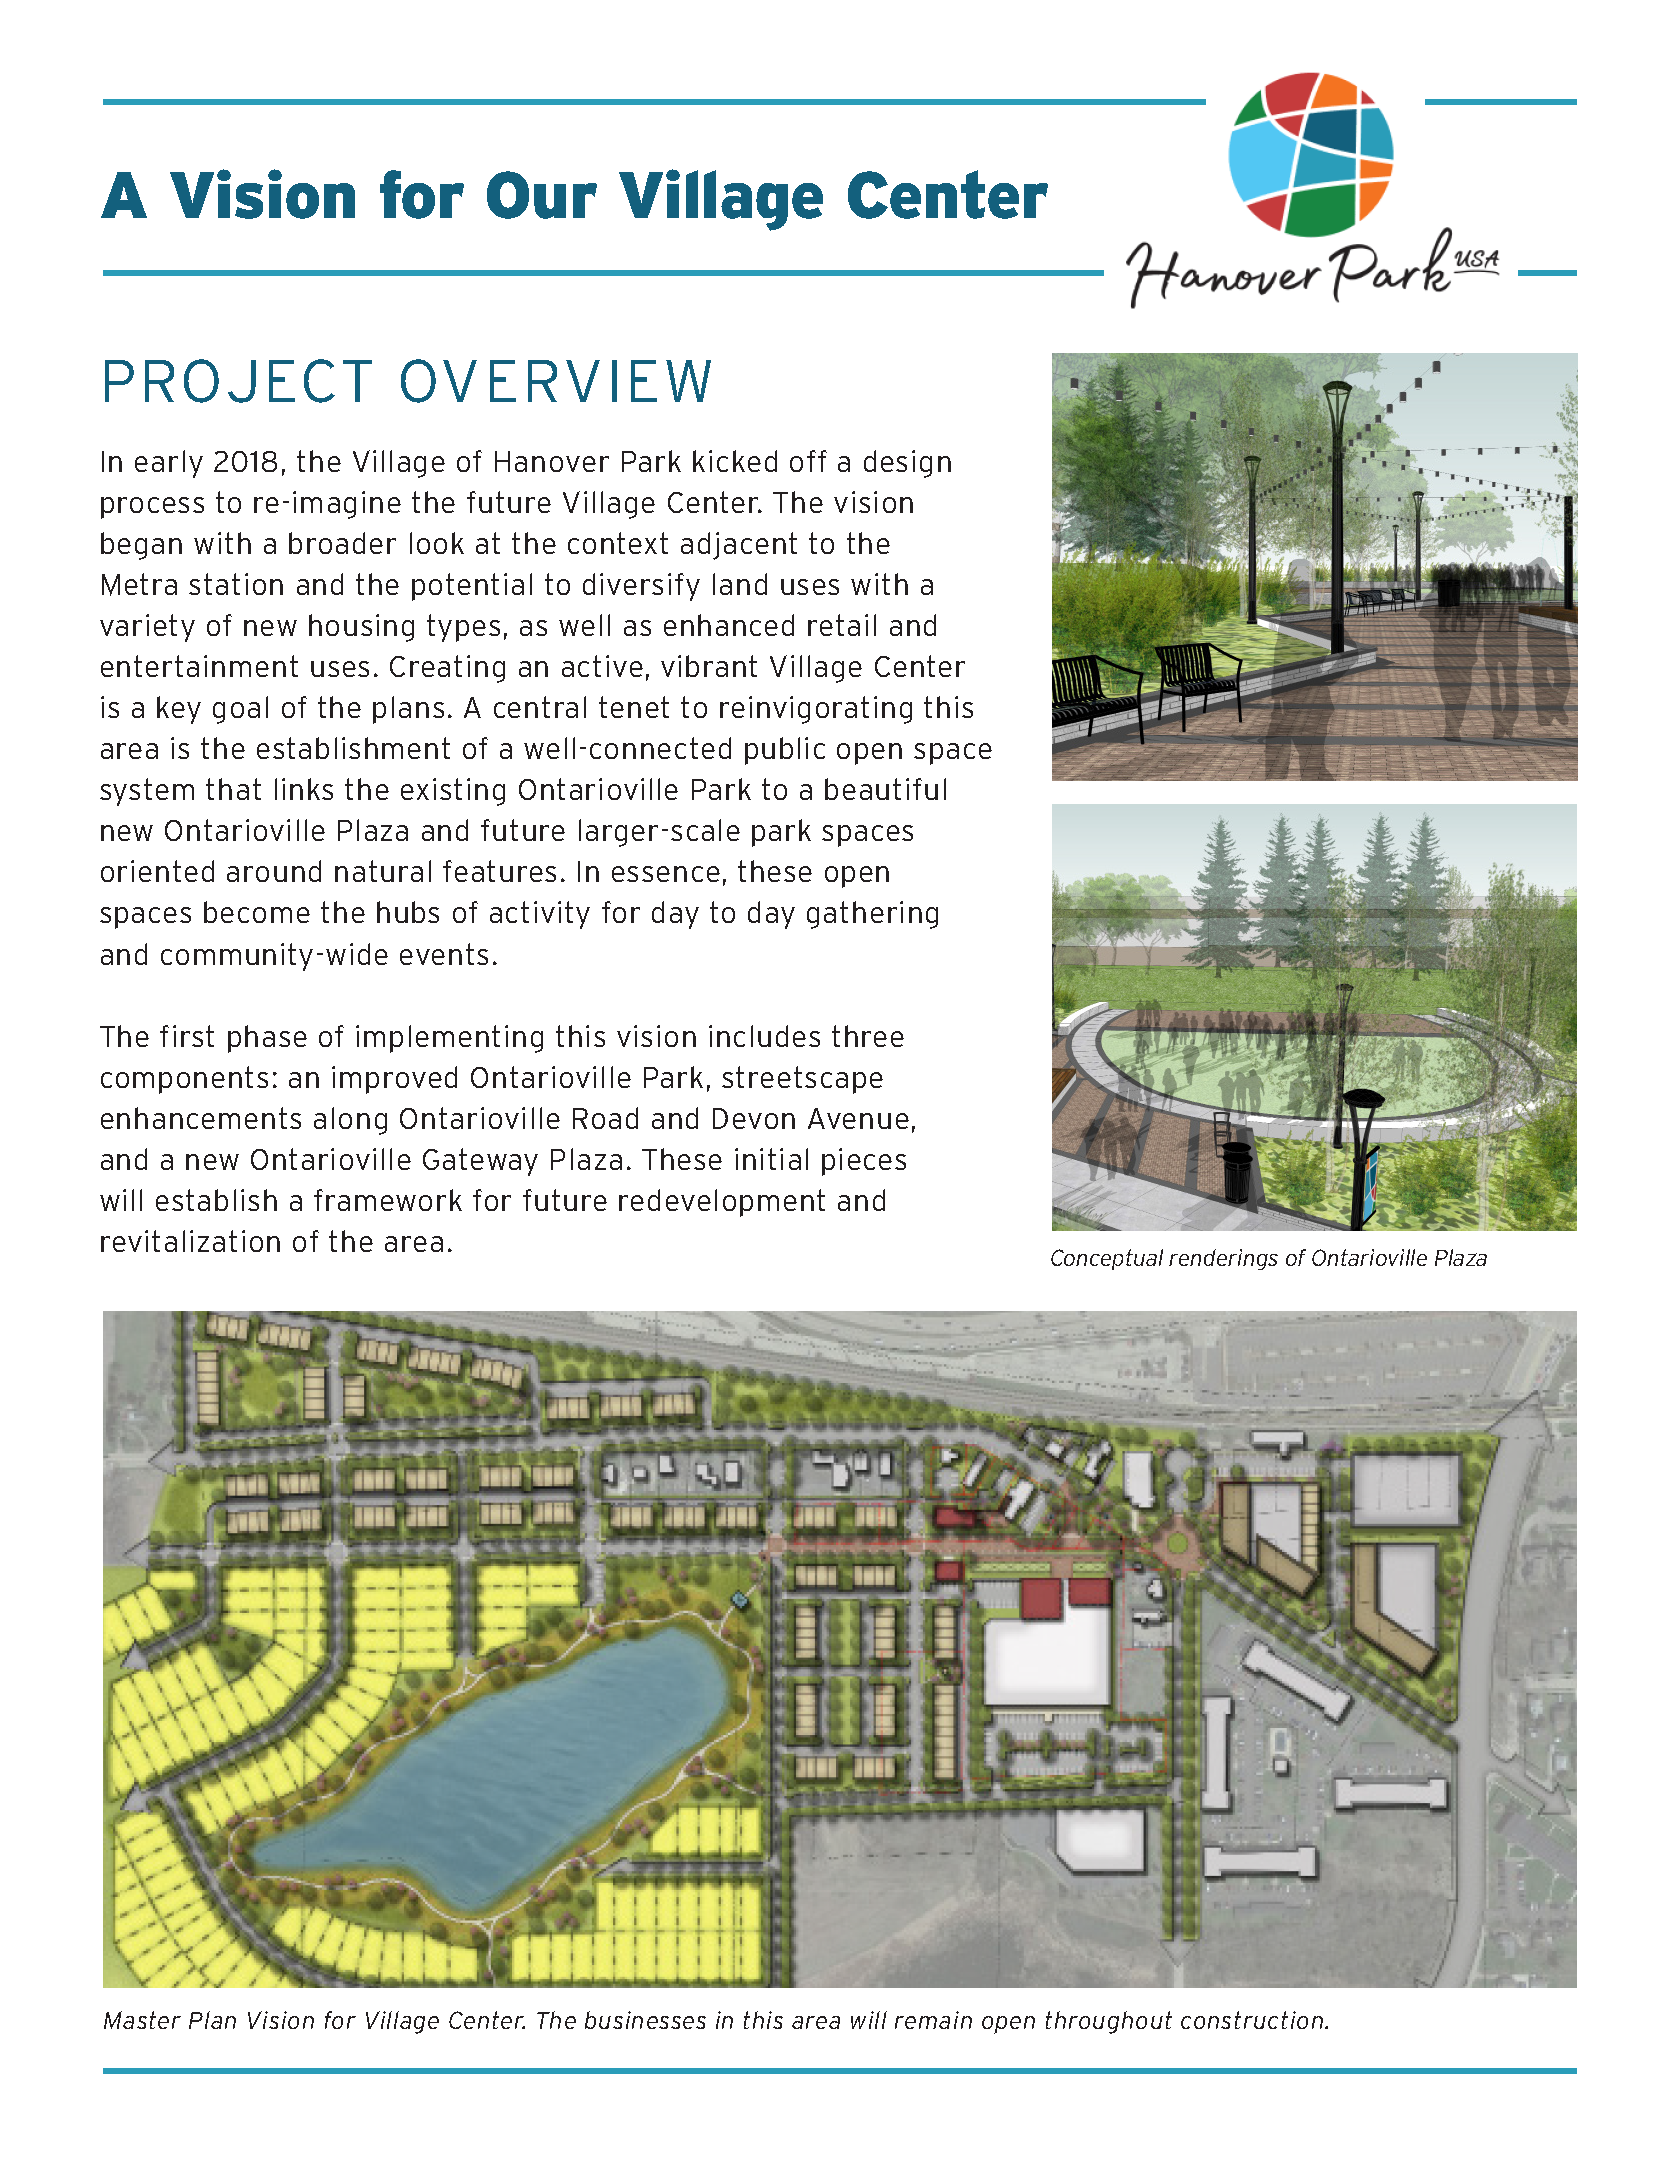 Village Center Project Overview